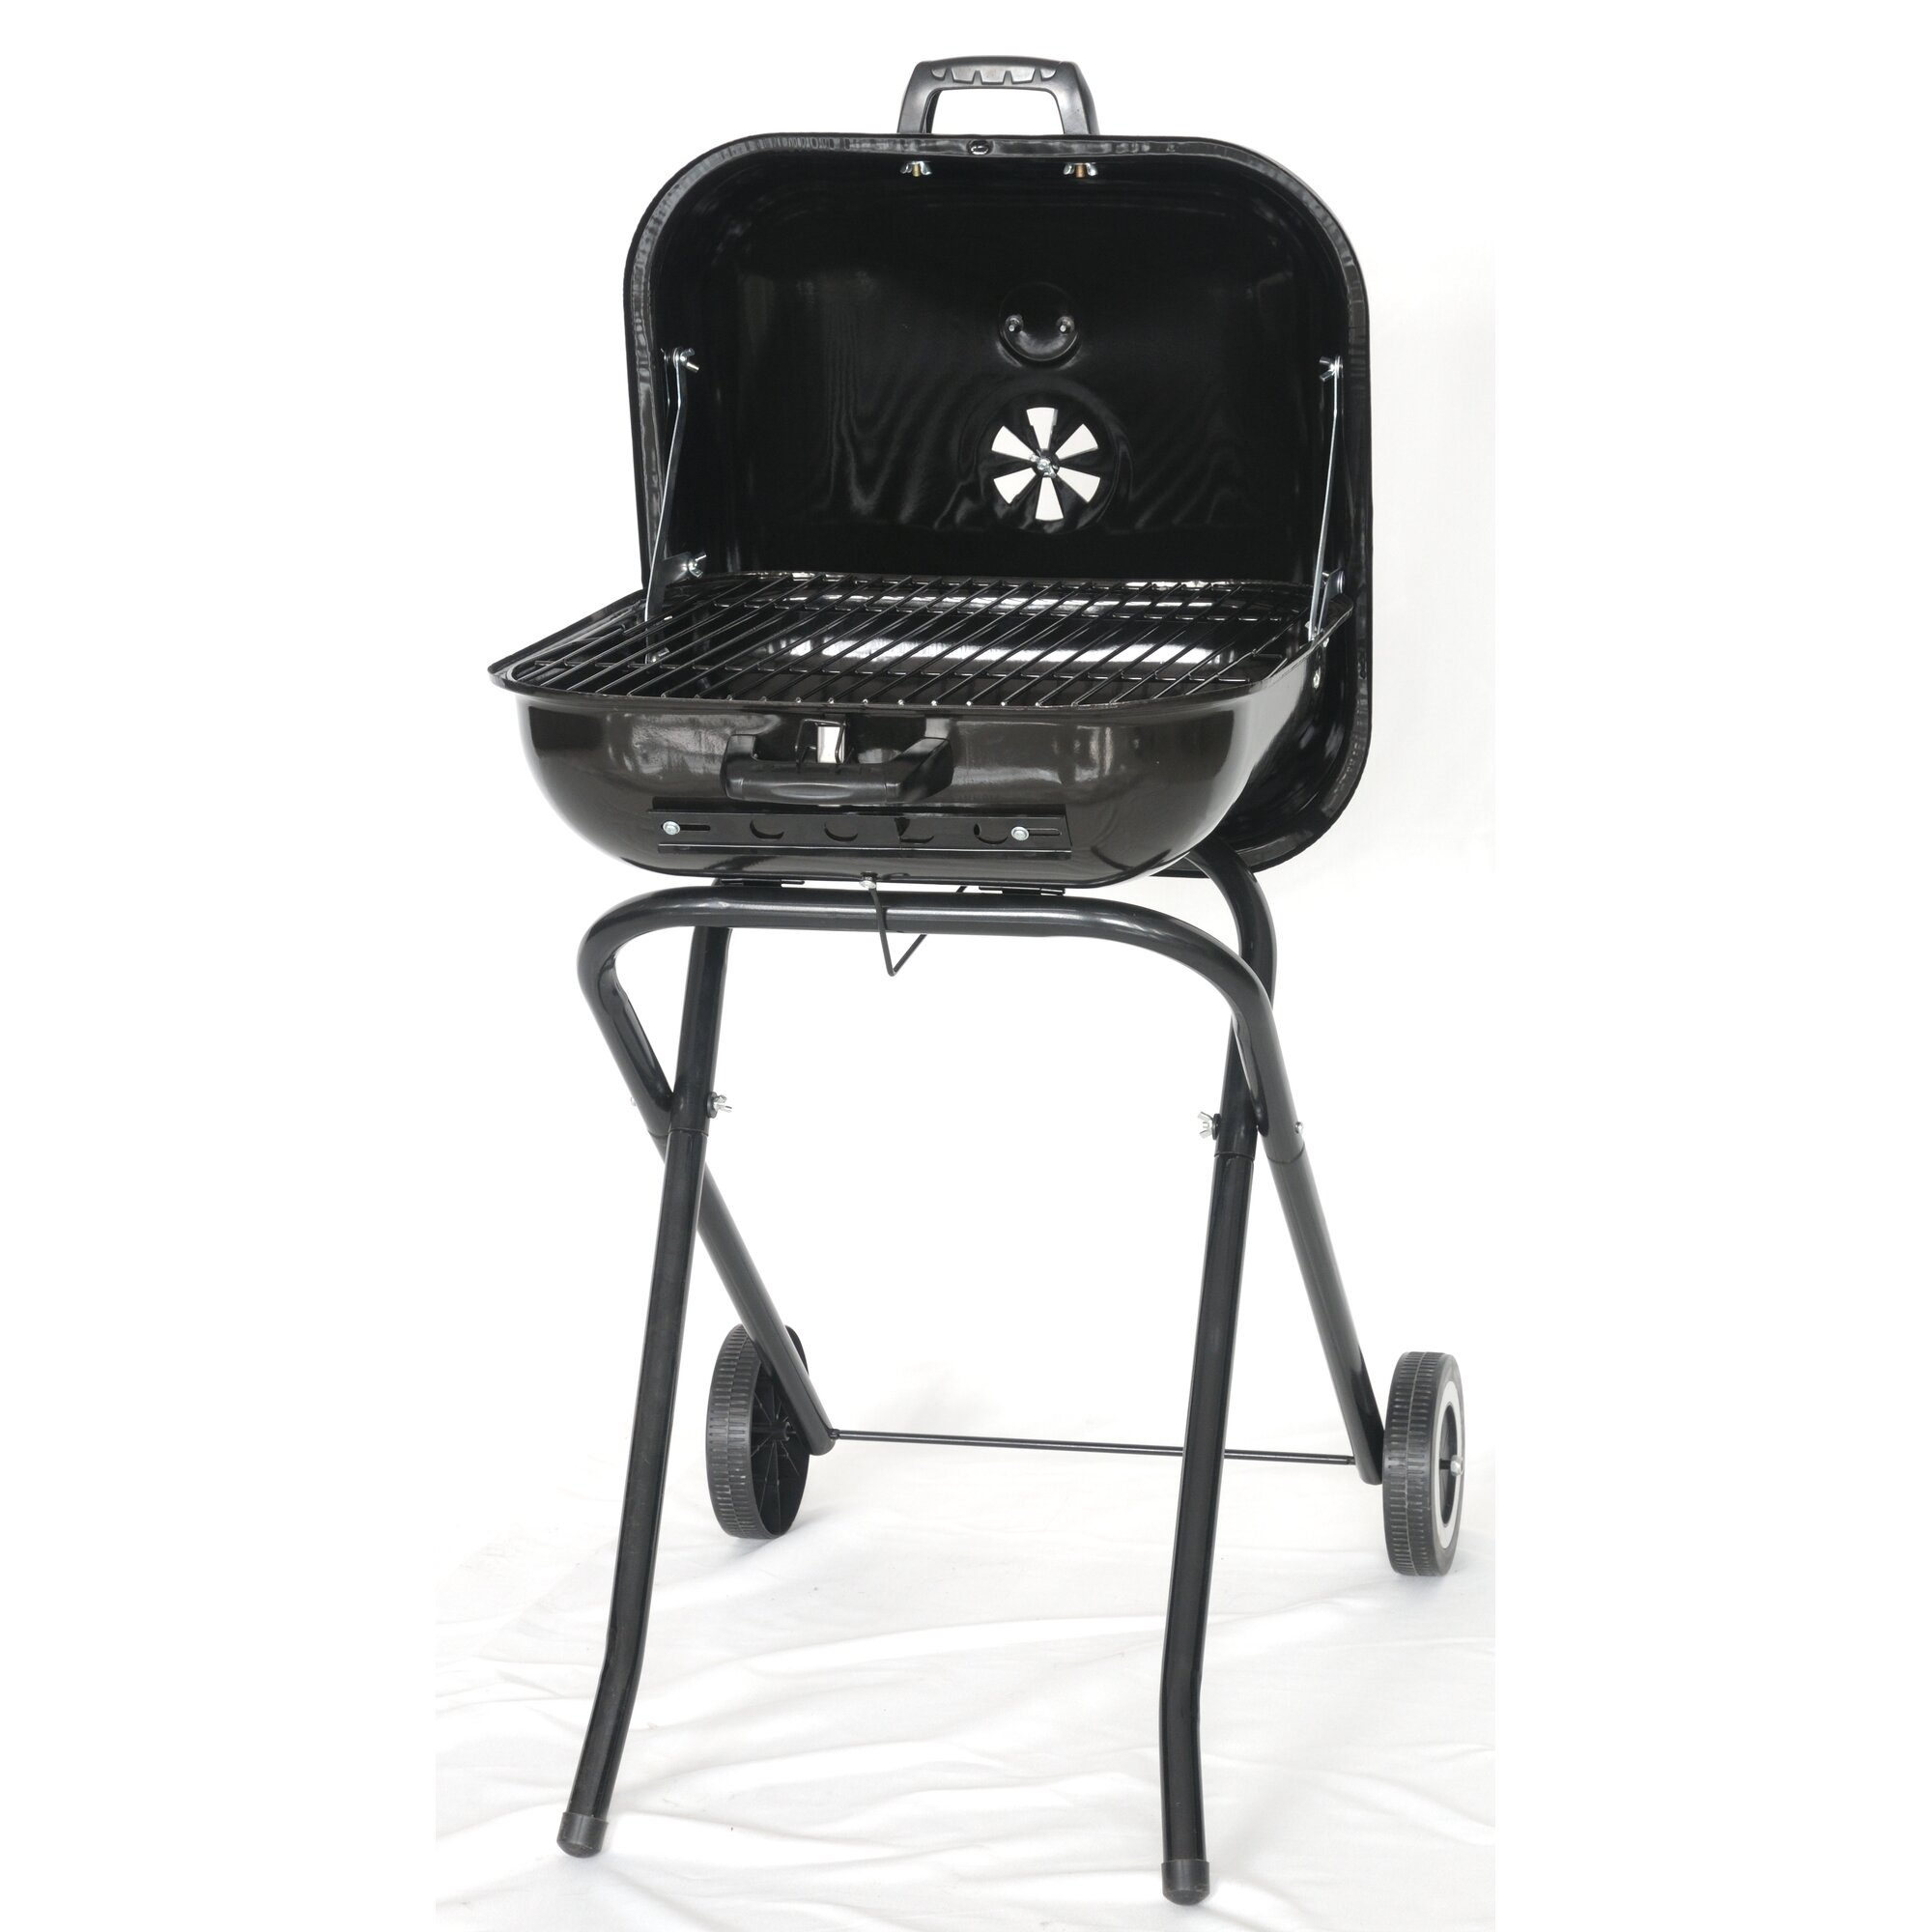 the original outdoor cooker 18 5 the original outdoor cooker charcoal grill reviews wayfair. Black Bedroom Furniture Sets. Home Design Ideas